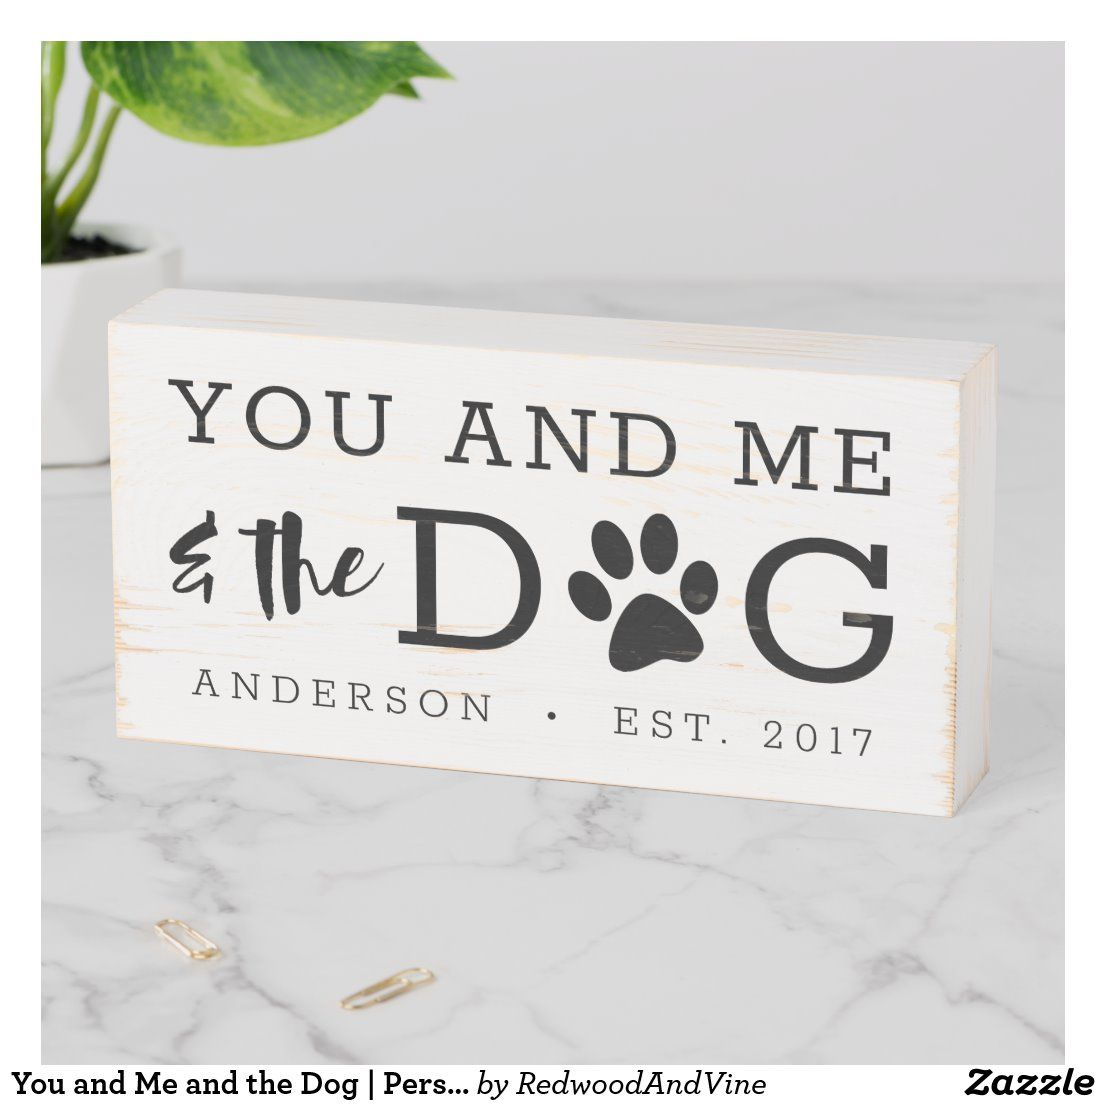 You and Me and the Dog Personalized Wooden Box Sign